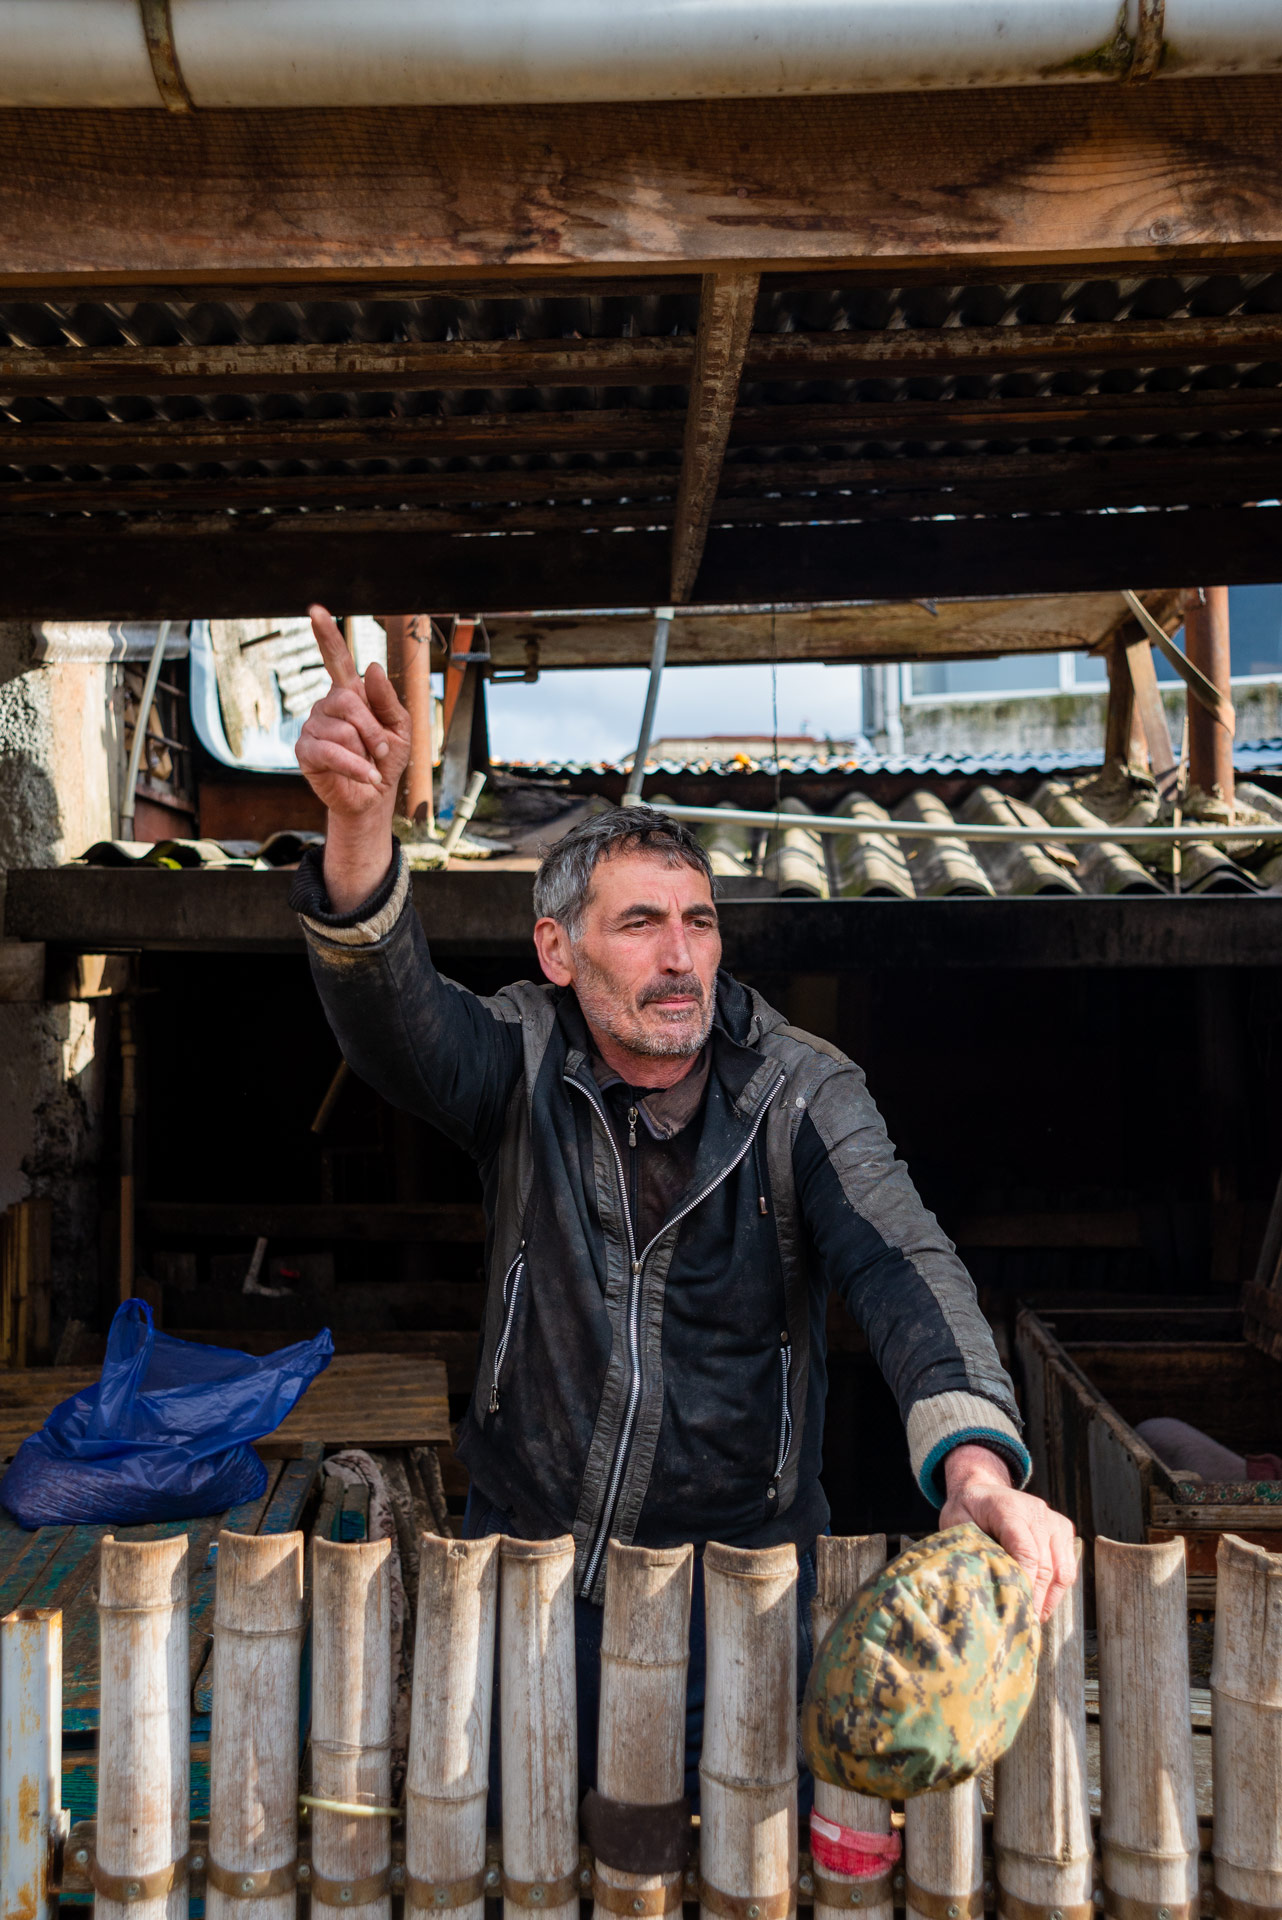 Another man I met in my first hours in Kutaisi, posing happily for the camera and inviting me to drink chacha with him.